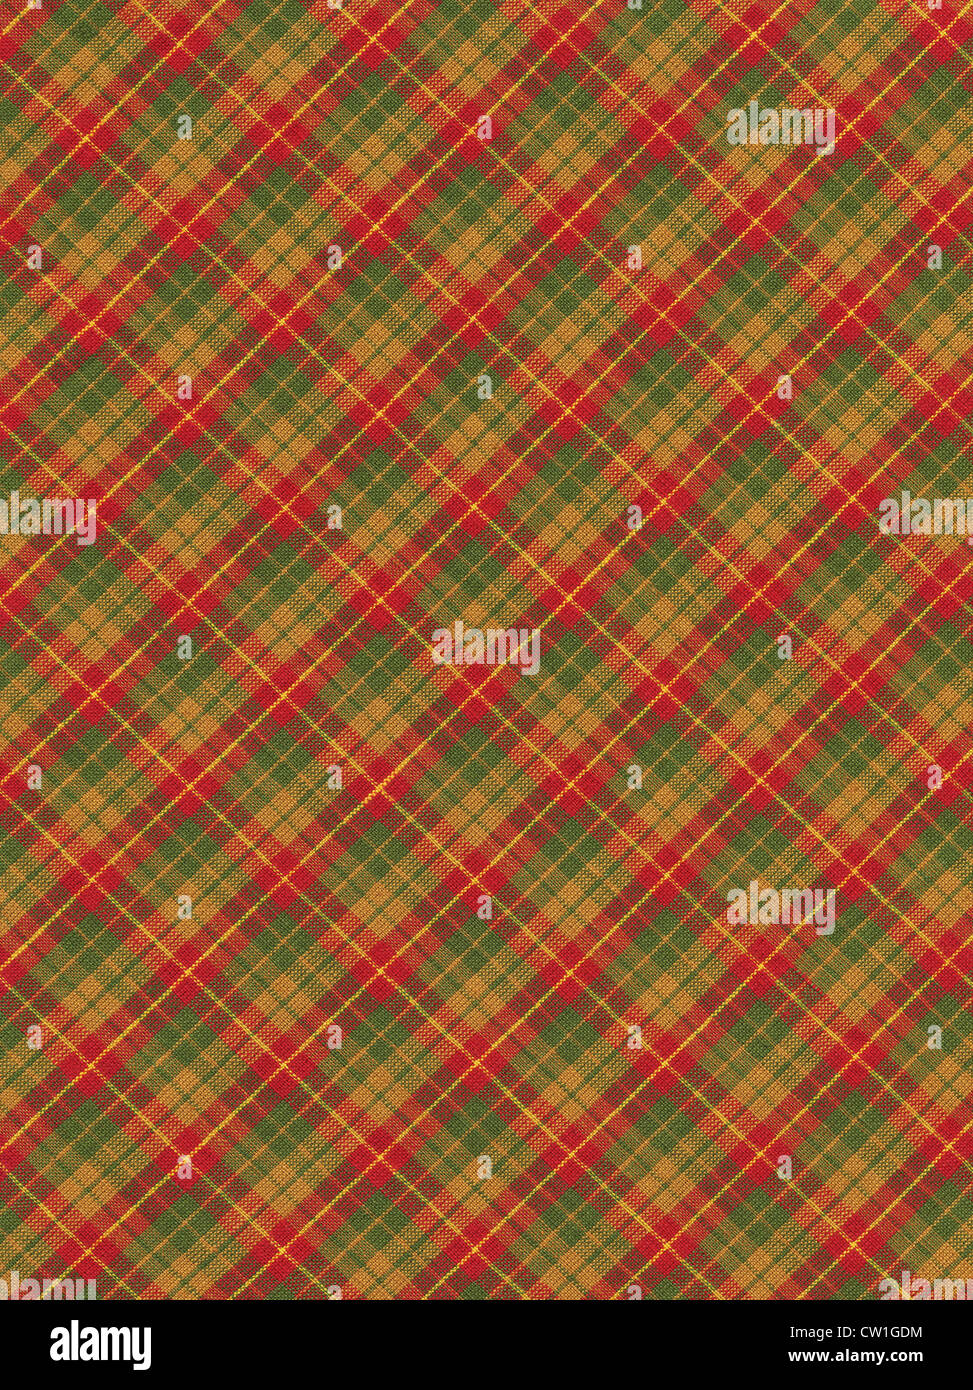 Red green and yellow plaid gingham textile fabric background Stock ...